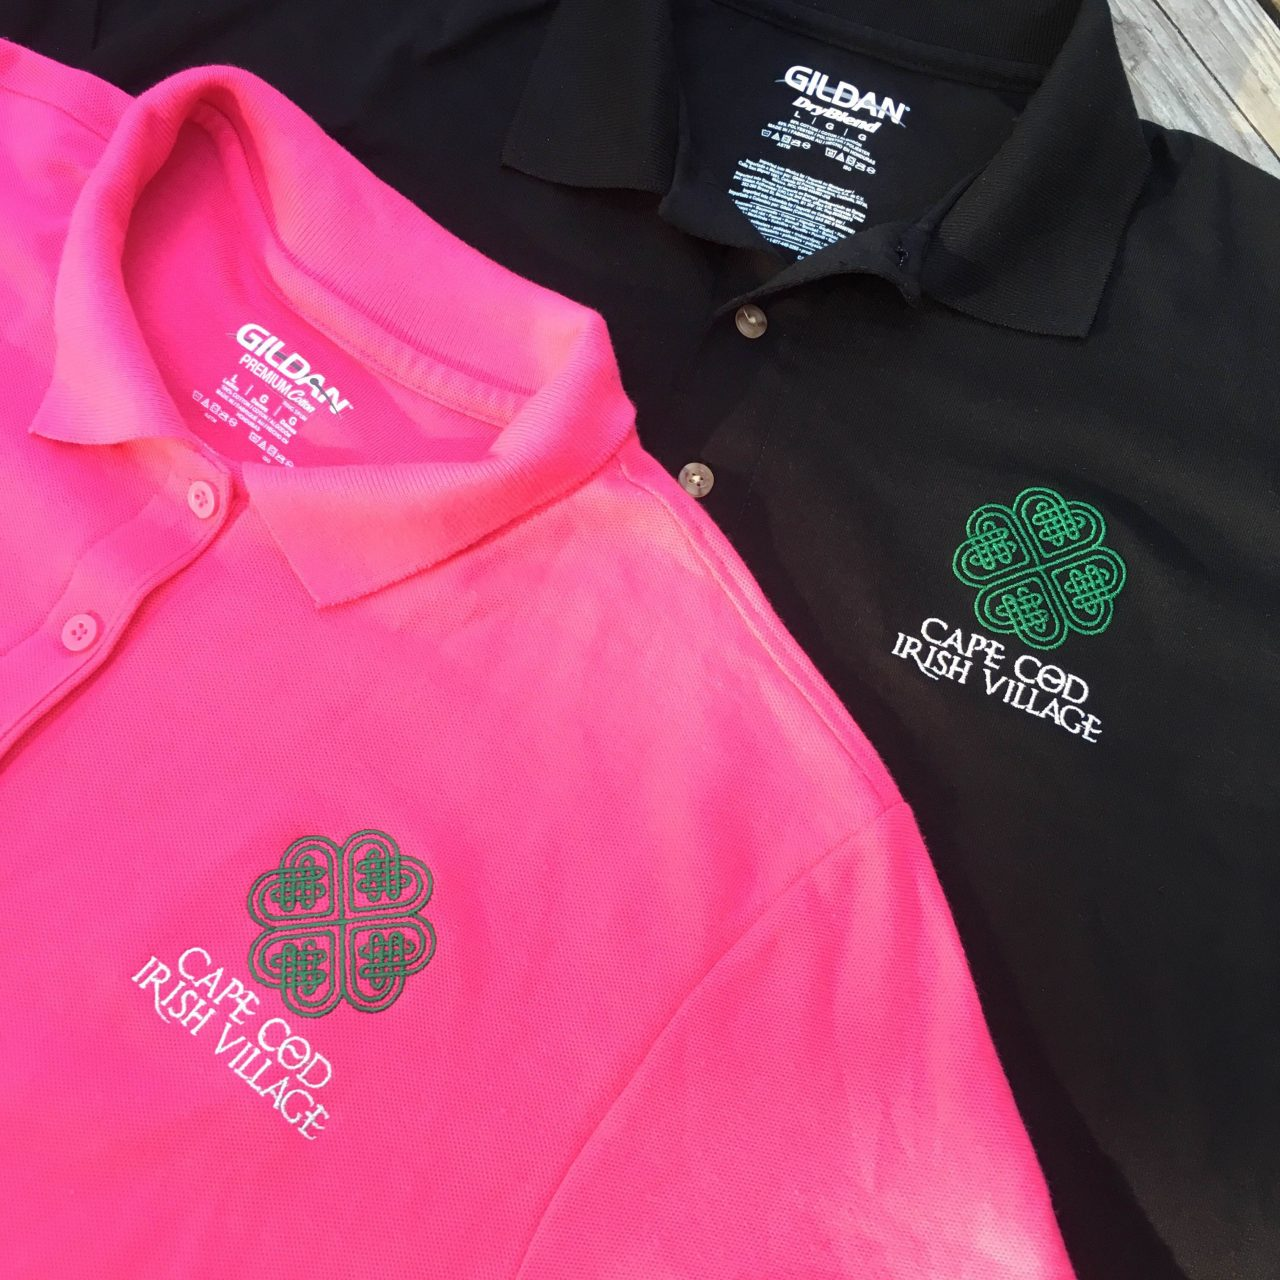 Cape Cod Irish Village Embroidered Polo Shirts